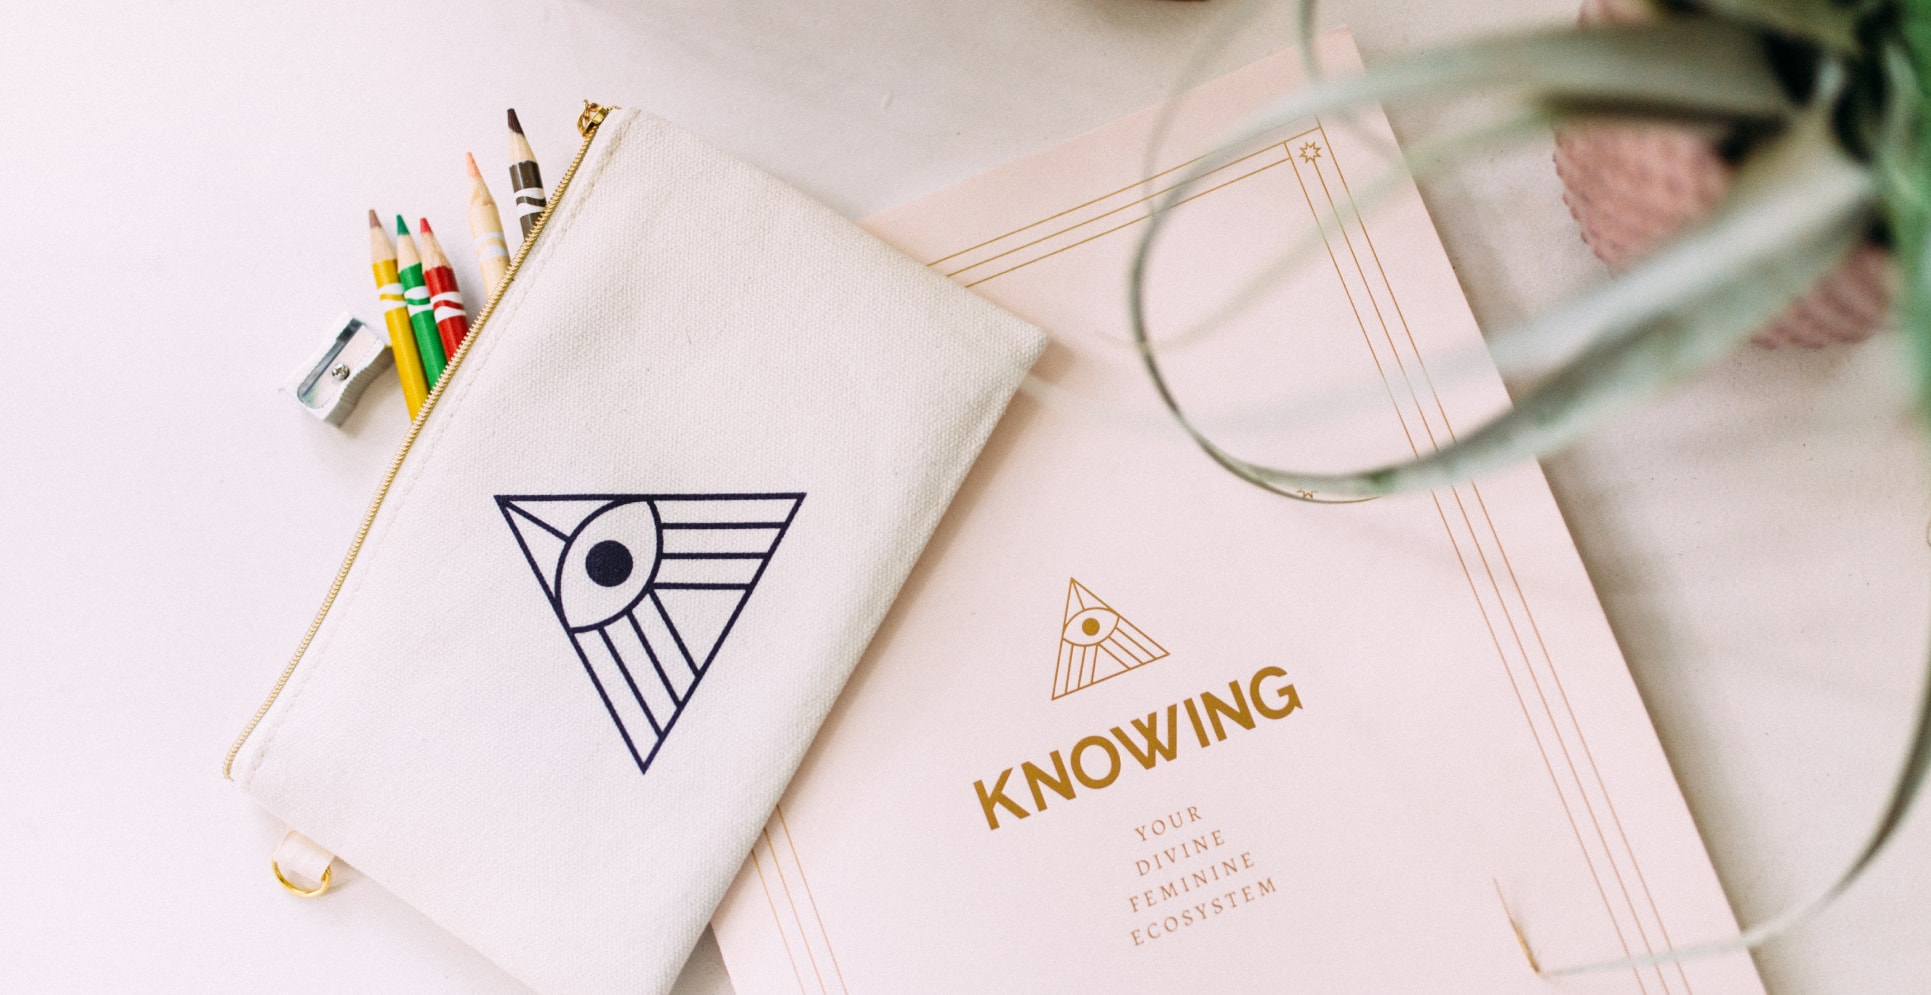 Knowing-casestudy2-5